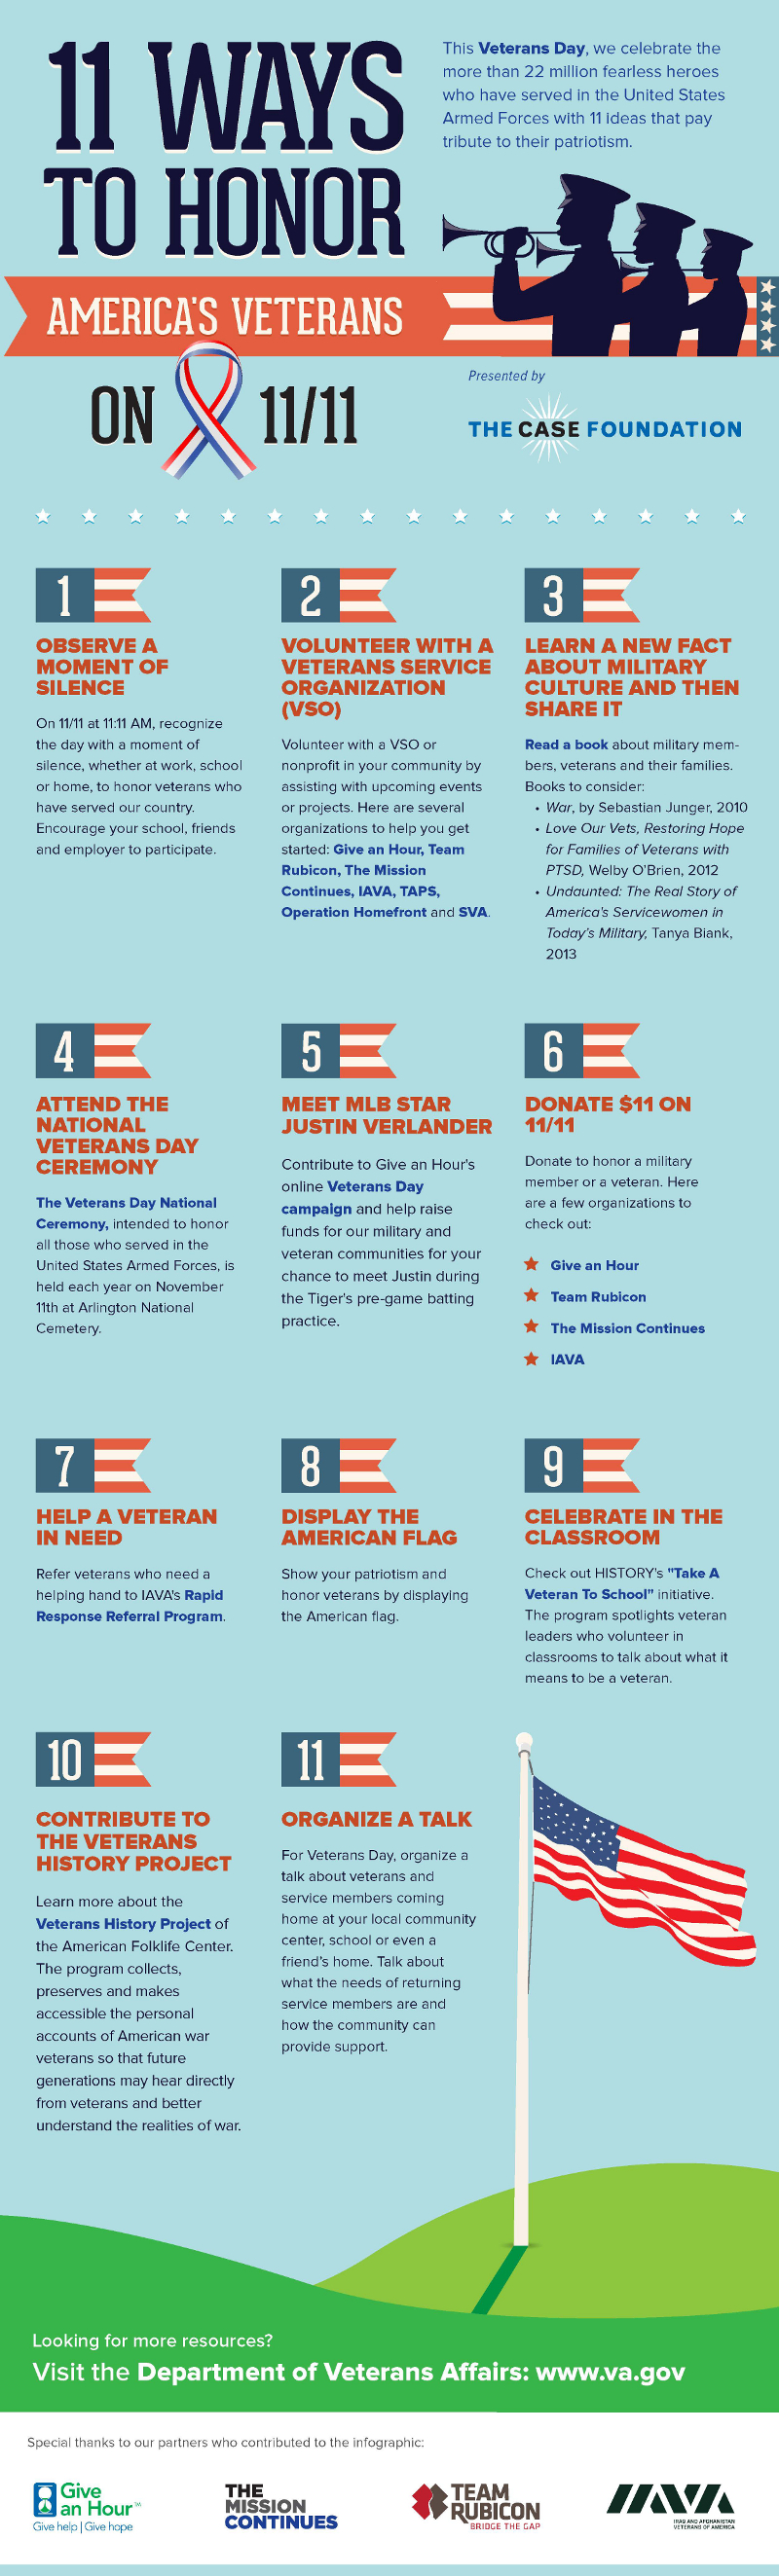 33 ideas for exemplification essay topics com one of the best groups to give honor to would be american veterans the below infographic outlines a listing of ways to honor veterans